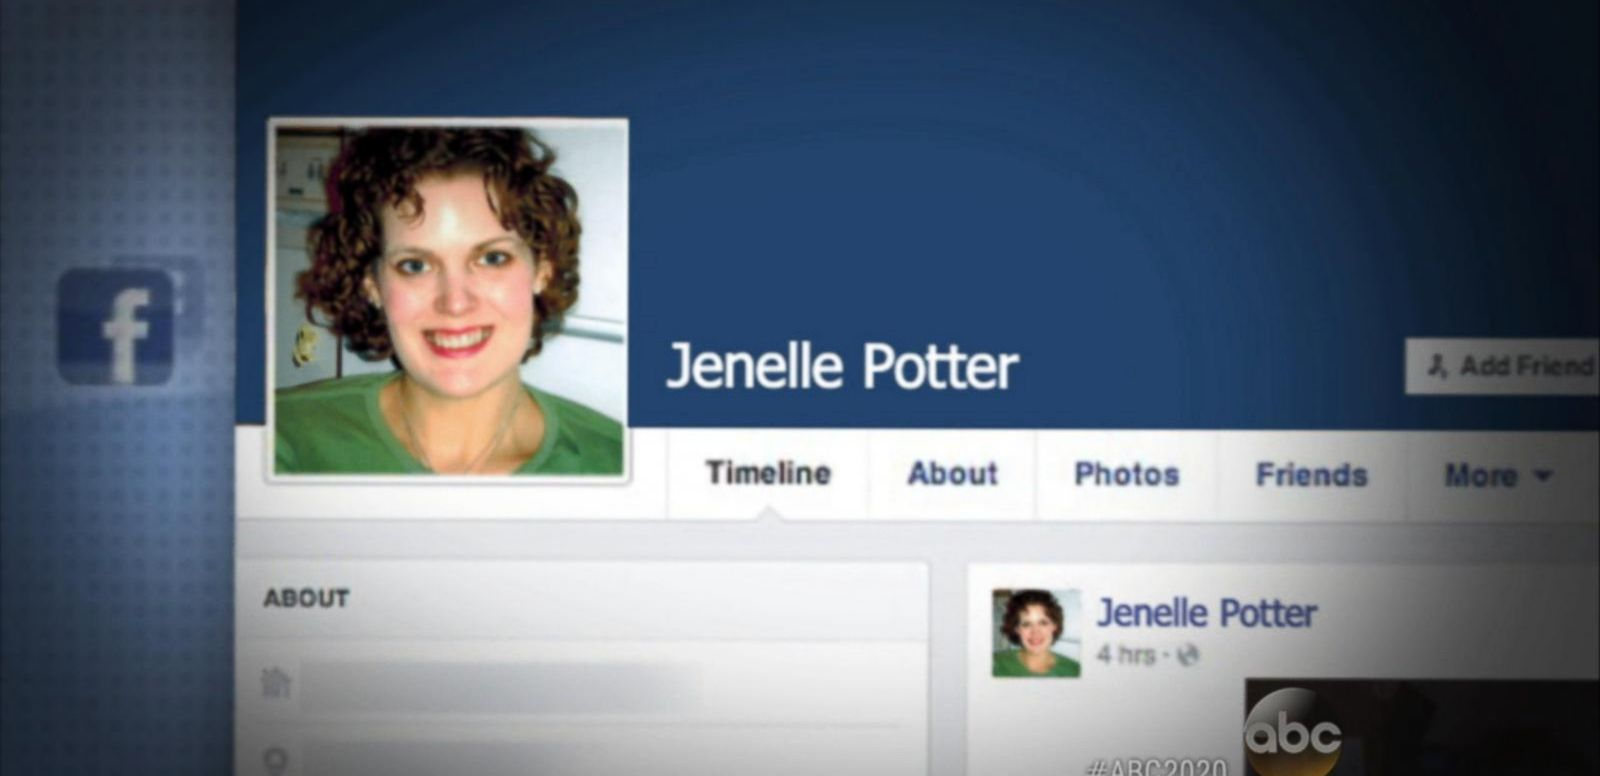 Tennessee Woman Claims She's Victim of Online Threats to Her Life